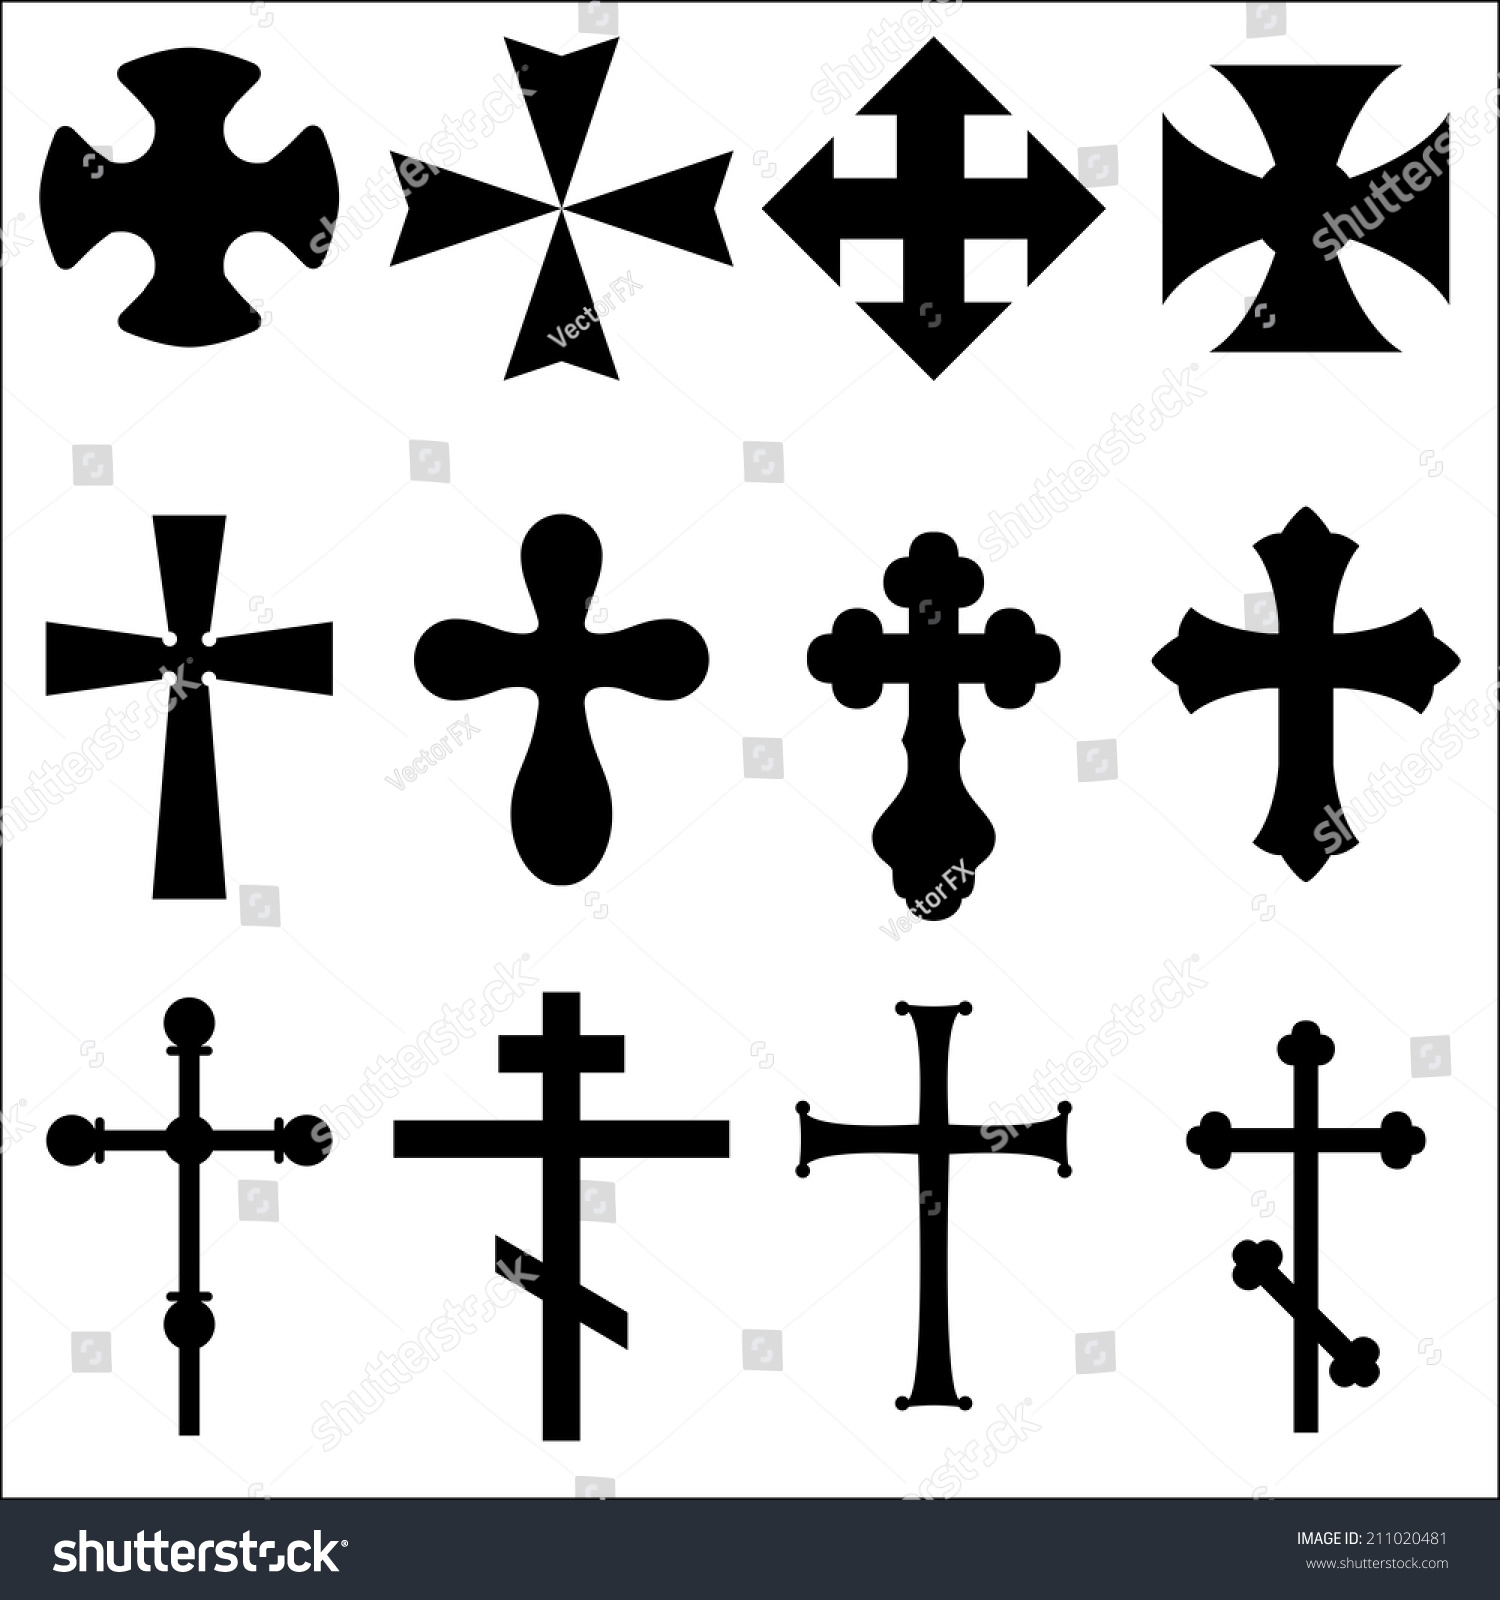 Royalty free illustrations of crosses different 211020481 stock black silhouettes of crosses catholic orthodox christian celtic pagan symbols of different religions crosses for the grave white background buycottarizona